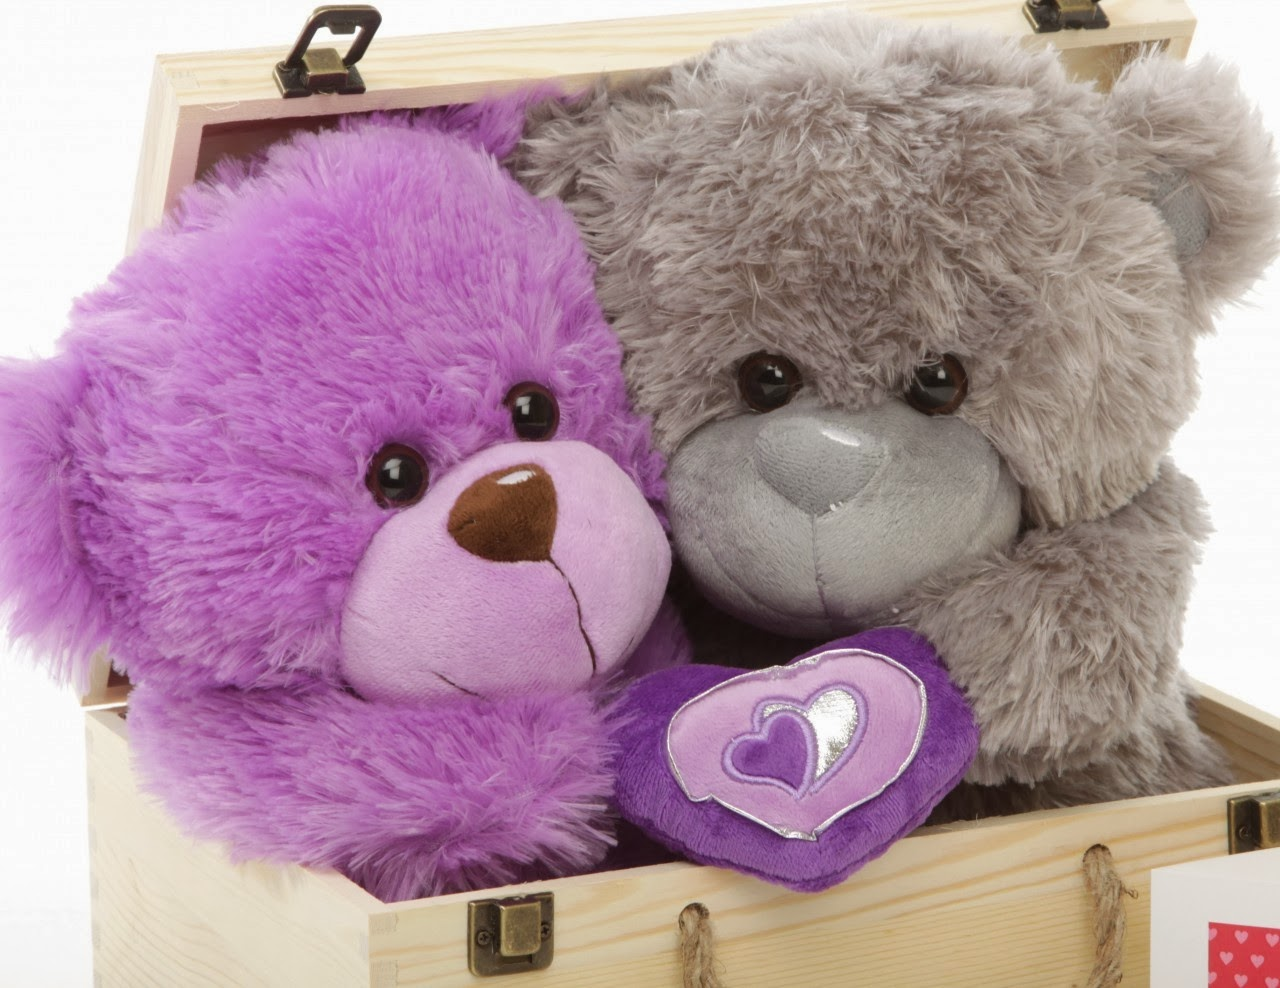 purple-and-gray-teddy-bear-couples-images.jpg